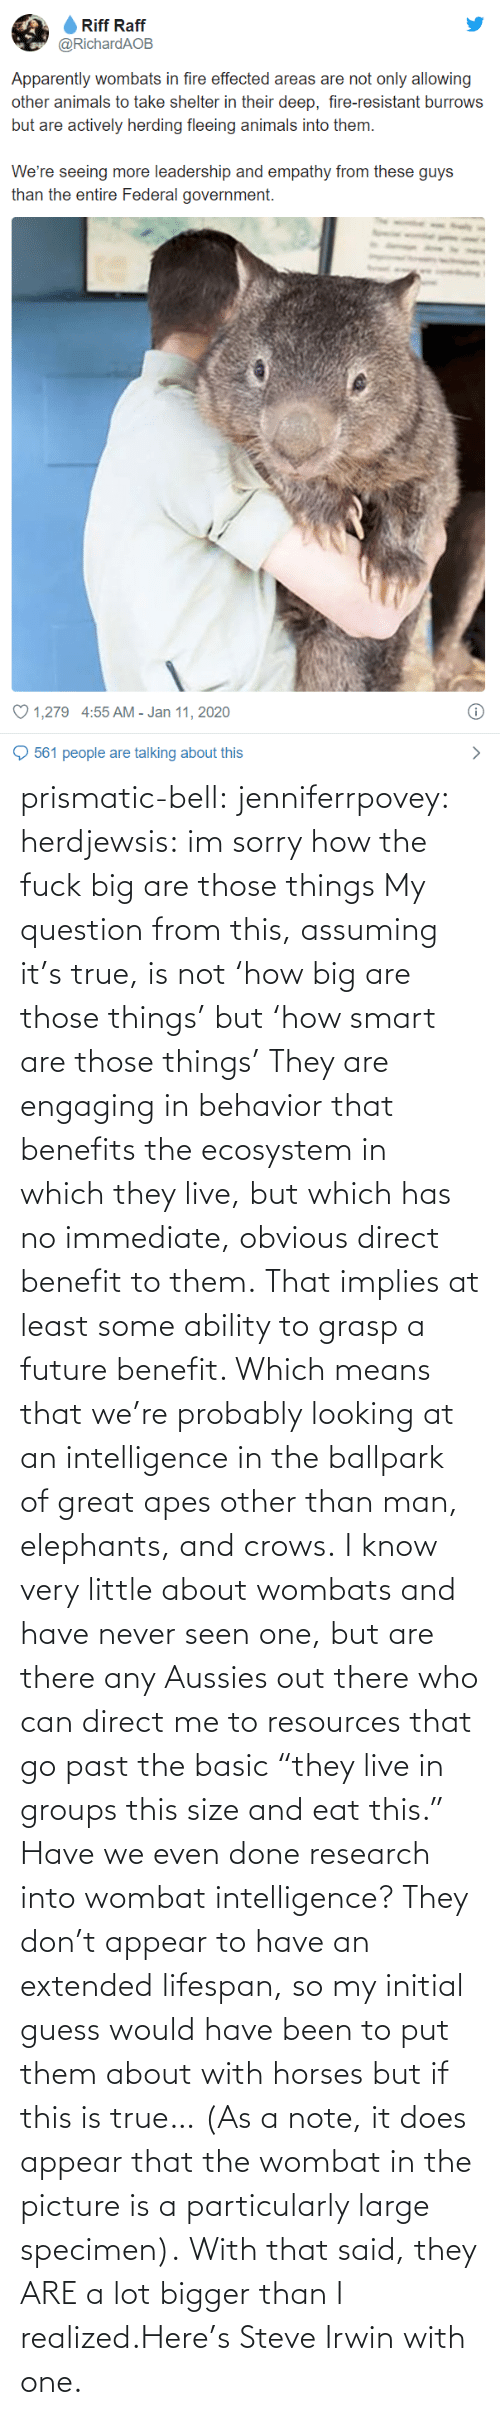 "Future: prismatic-bell:  jenniferrpovey: herdjewsis: im sorry how the fuck big are those things My question from this, assuming it's true, is not 'how big are those things' but 'how smart are those things' They are engaging in behavior that benefits the ecosystem in which they live, but which has no immediate, obvious direct benefit to them. That implies at least some ability to grasp a future benefit. Which means that we're probably looking at an intelligence in the ballpark of great apes other than man, elephants, and crows. I know very little about wombats and have never seen one, but are there any Aussies out there who can direct me to resources that go past the basic ""they live in groups this size and eat this."" Have we even done research into wombat intelligence? They don't appear to have an extended lifespan, so my initial guess would have been to put them about with horses but if this is true… (As a note, it does appear that the wombat in the picture is a particularly large specimen).  With that said, they ARE a lot bigger than I realized.Here's Steve Irwin with one."